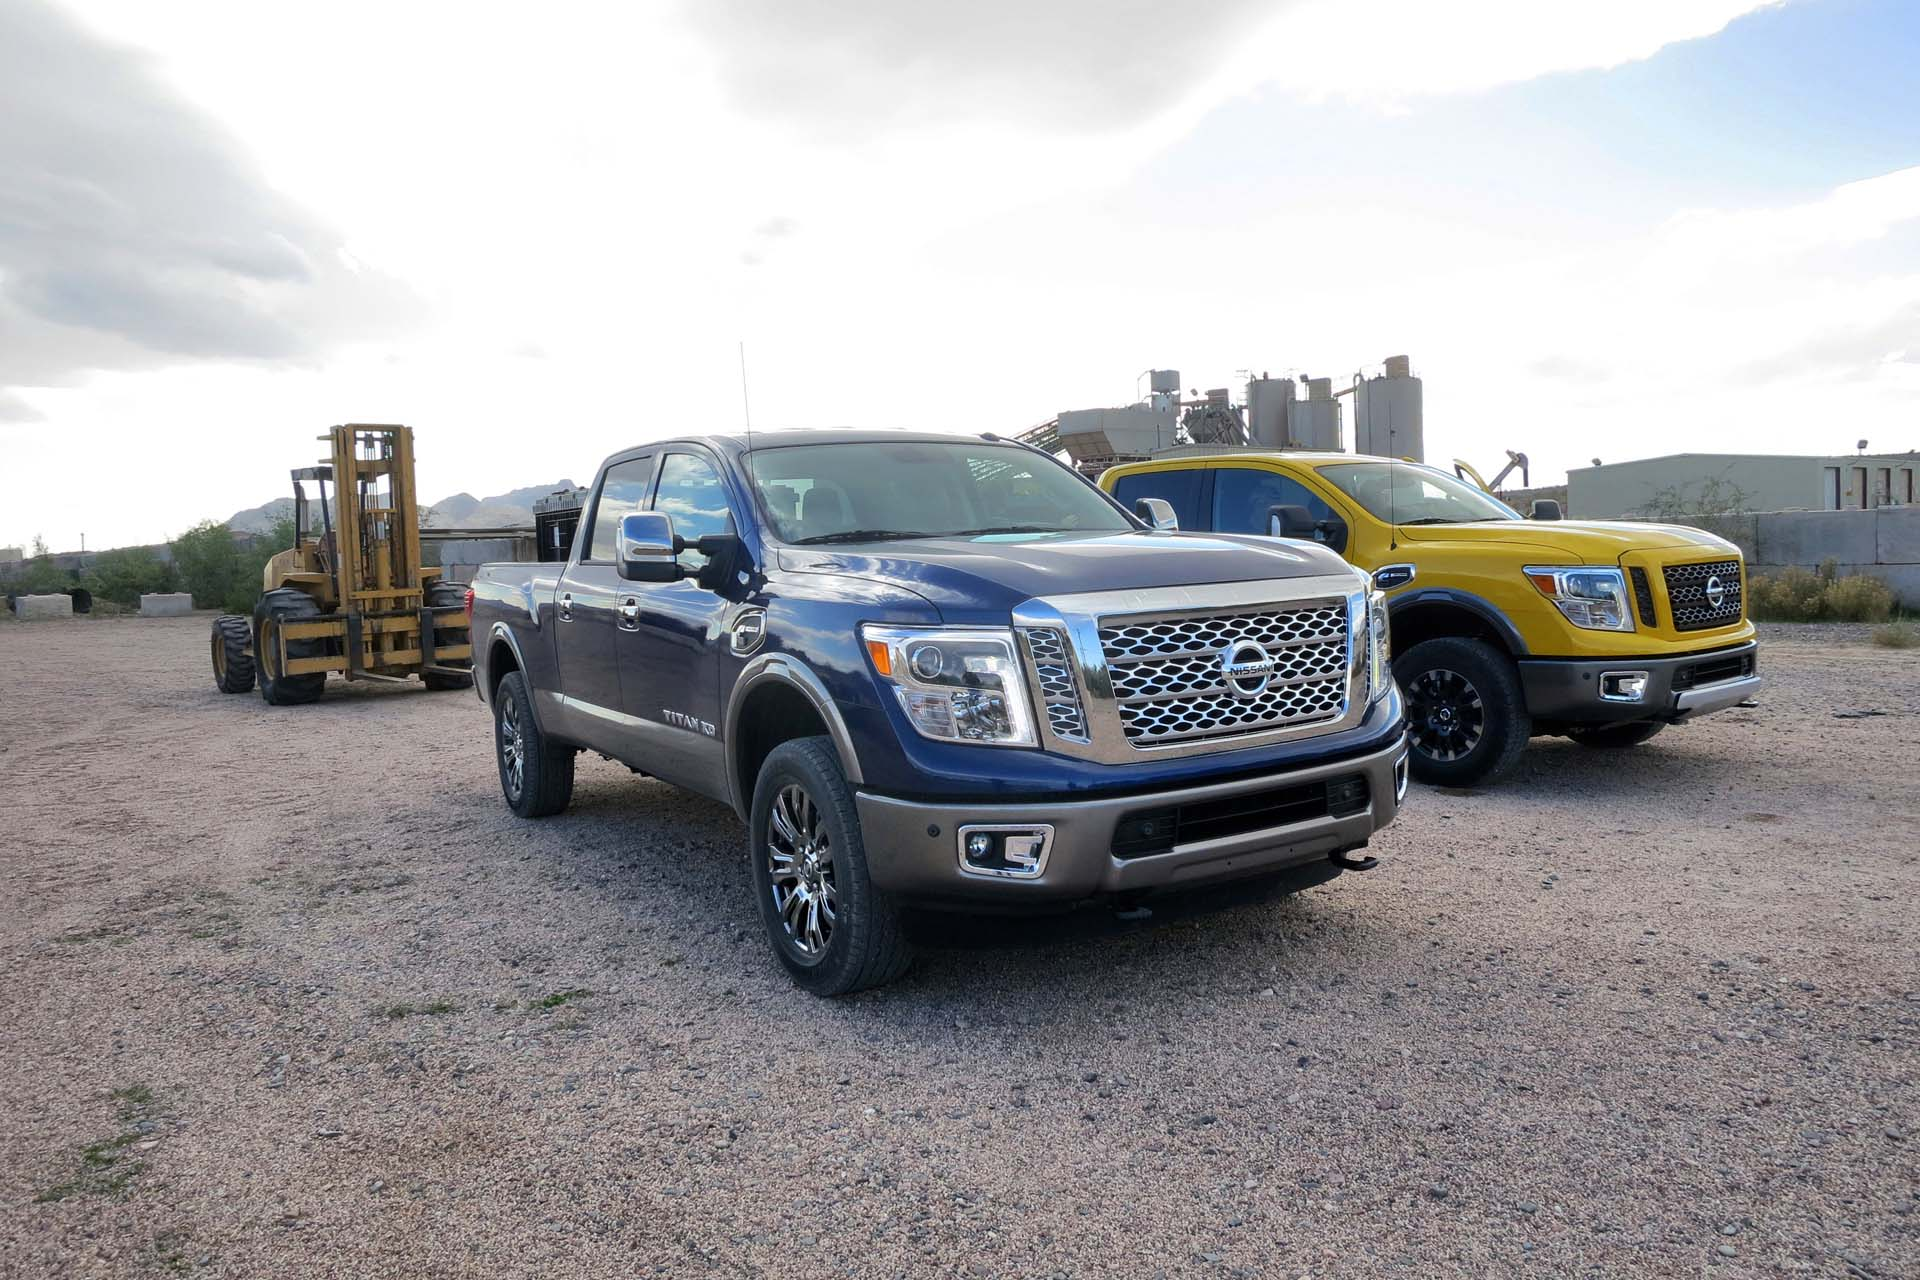 While Canadian pricing won't be available until the truck's 2016 arrival date is announced, the Titan XD is expected to start around US $40,000 for base crew cab 4x4, up to US $60,000 for a fully loaded Platinum Reserve. The regular gasoline version should arrive a few months after the Titan XD, with pricing competitive with domestic brands.